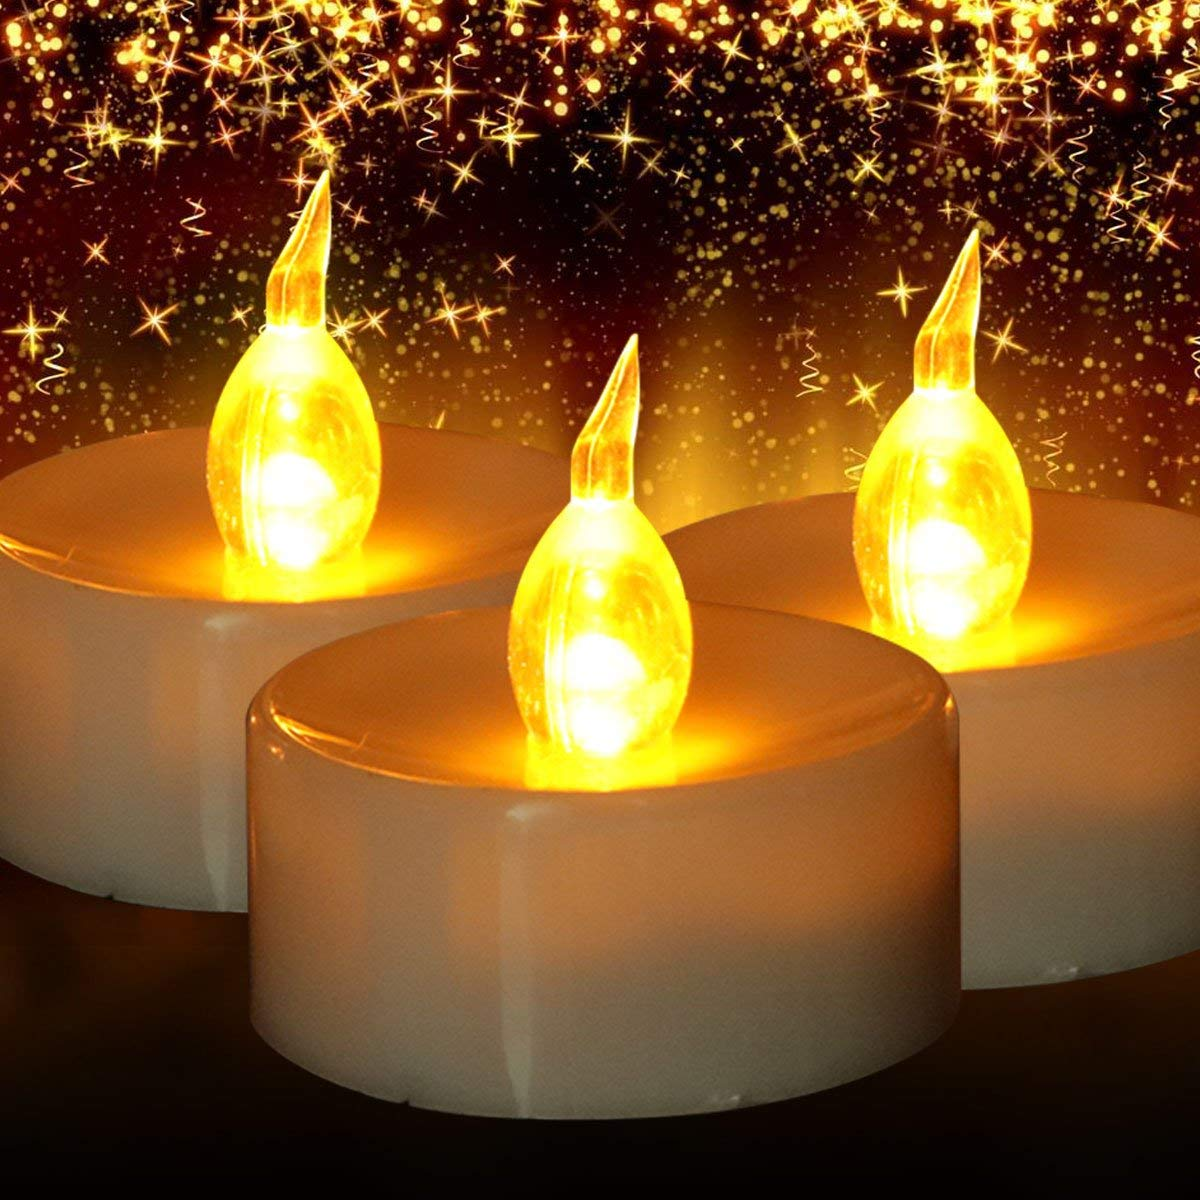 Get Quotations Tea Light Battery Operated With Timer 24 Pack Flicker Lights Flameless Candles For